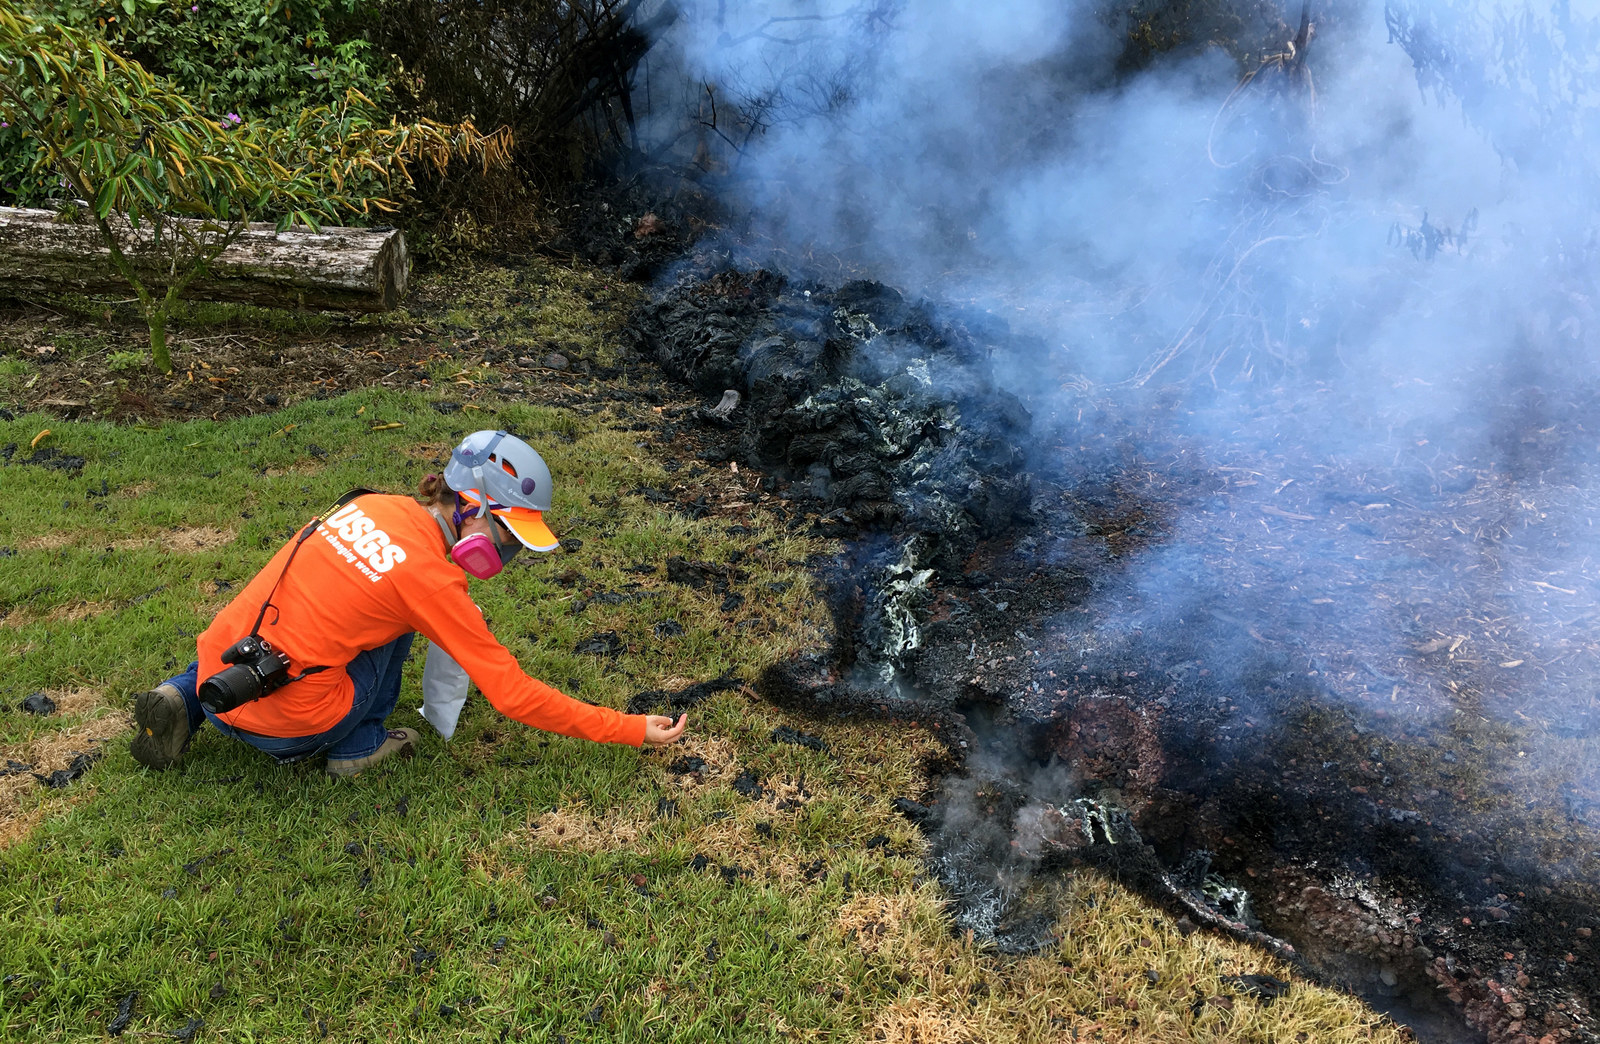 A geologist collects samples of spatter for laboratory analysis on May 6 in Leilani Estates.